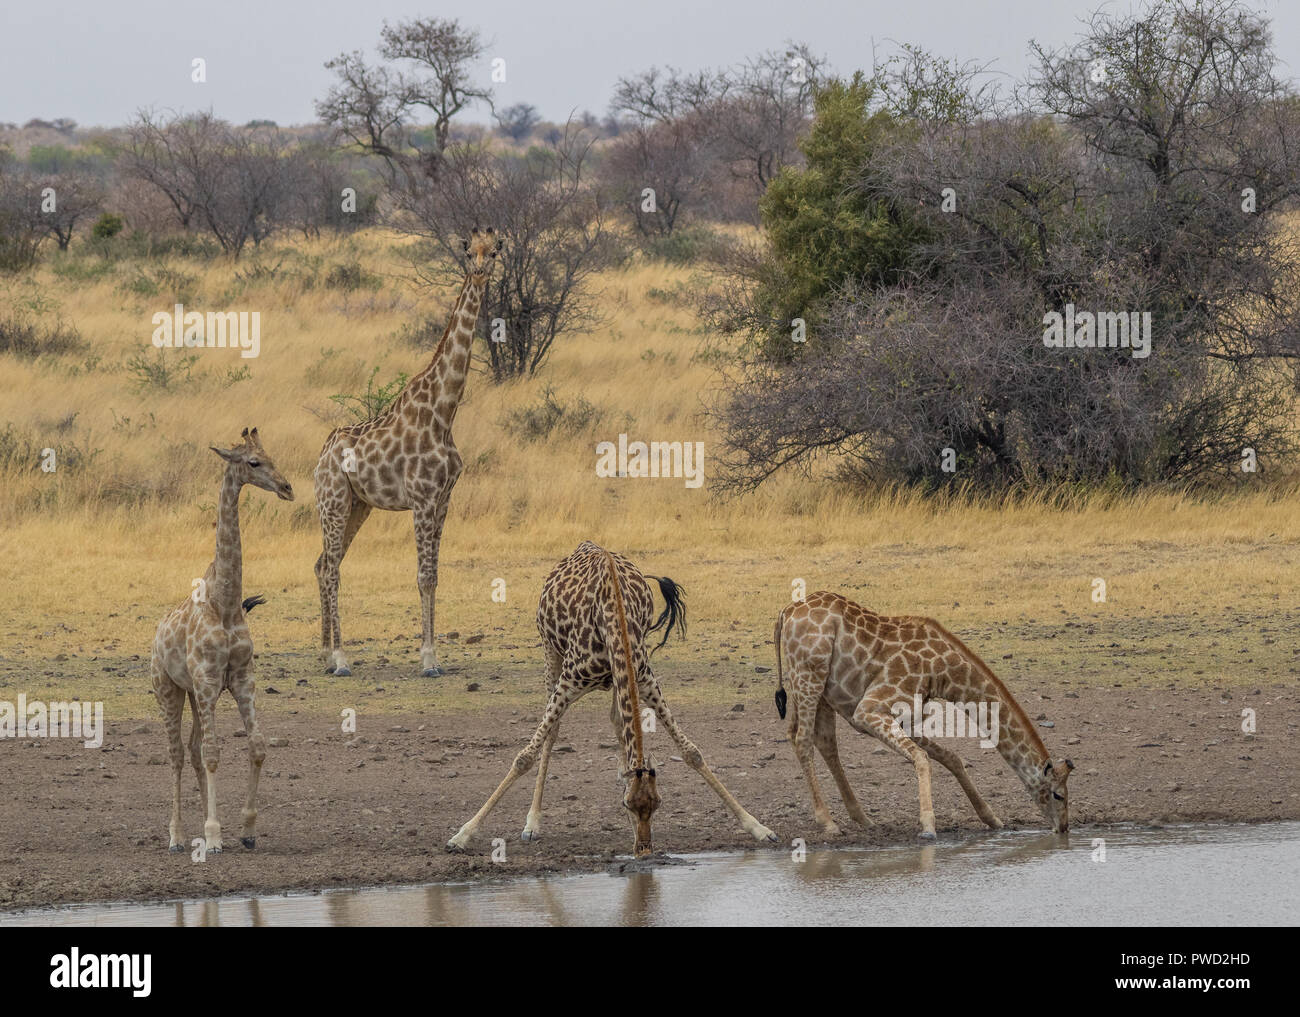 Giraffes drink water at a waterhole in the African wilderness image with copy space in landscape format - Stock Image